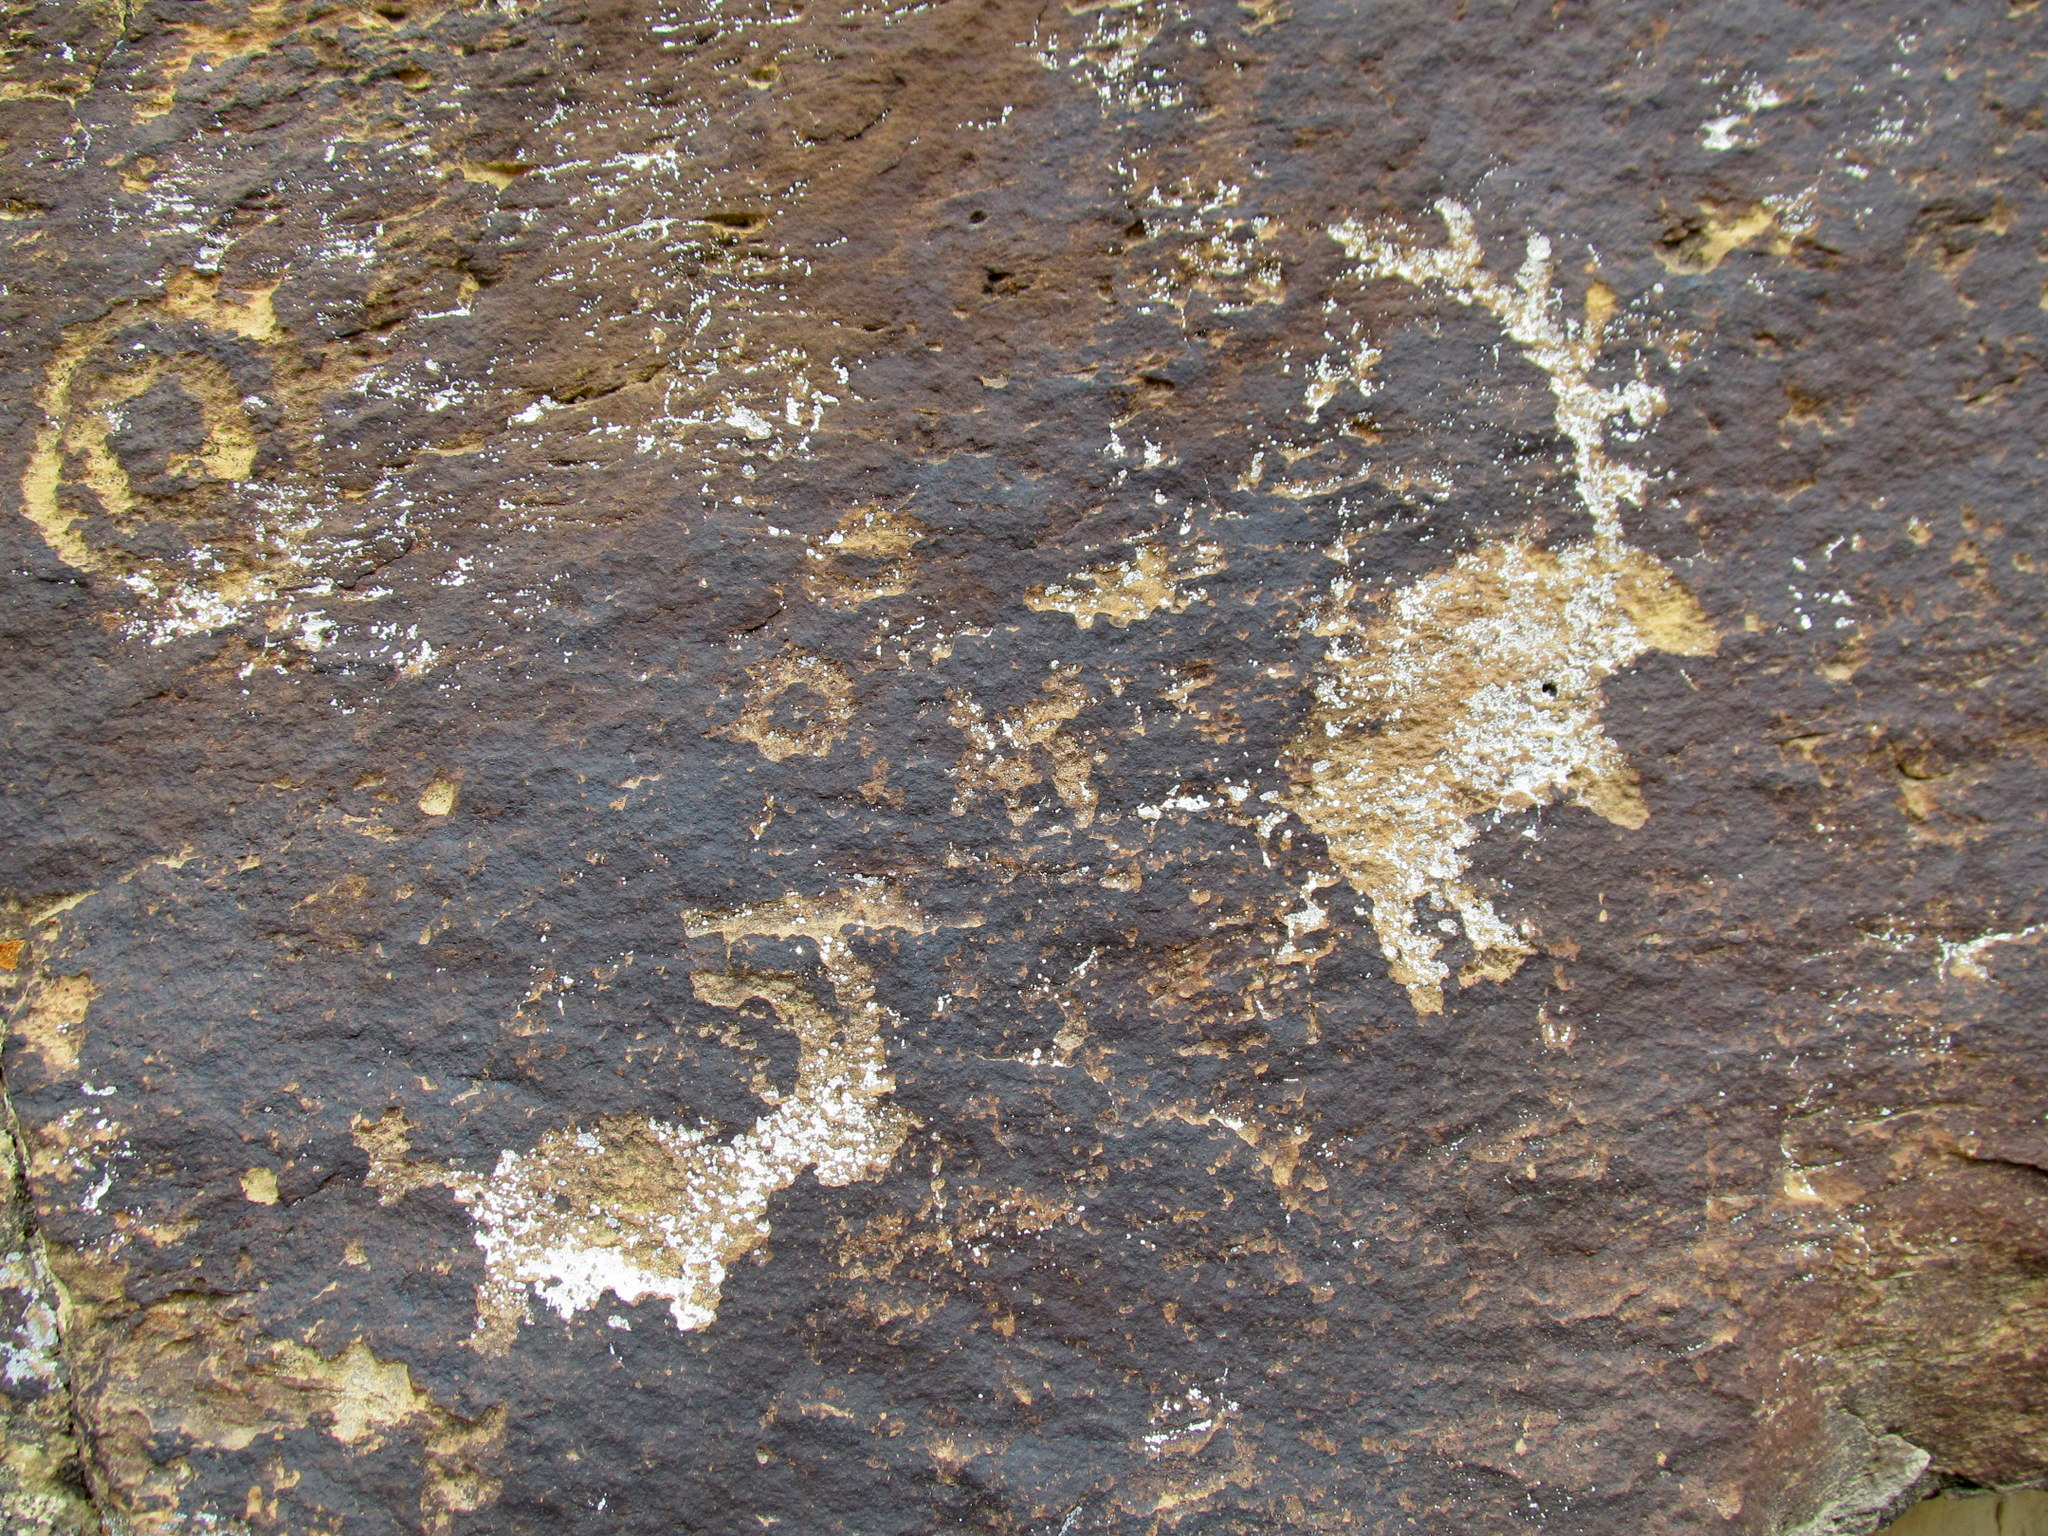 Photo: Small but interesting petroglyphs